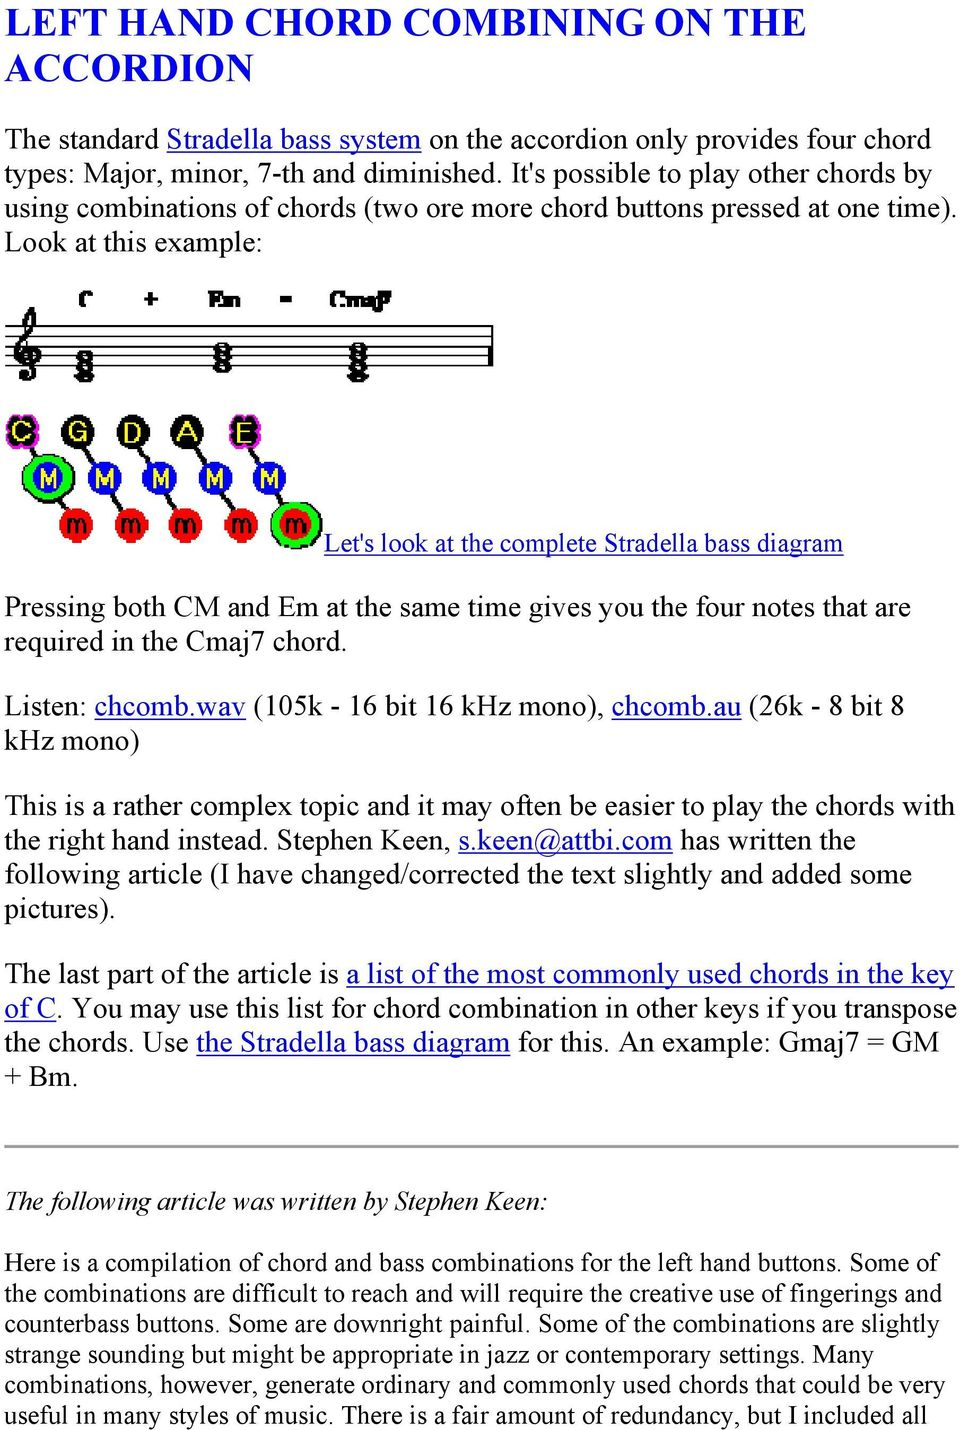 LEFT HAND CHORD COMBINING ON THE ACCORDION - PDF